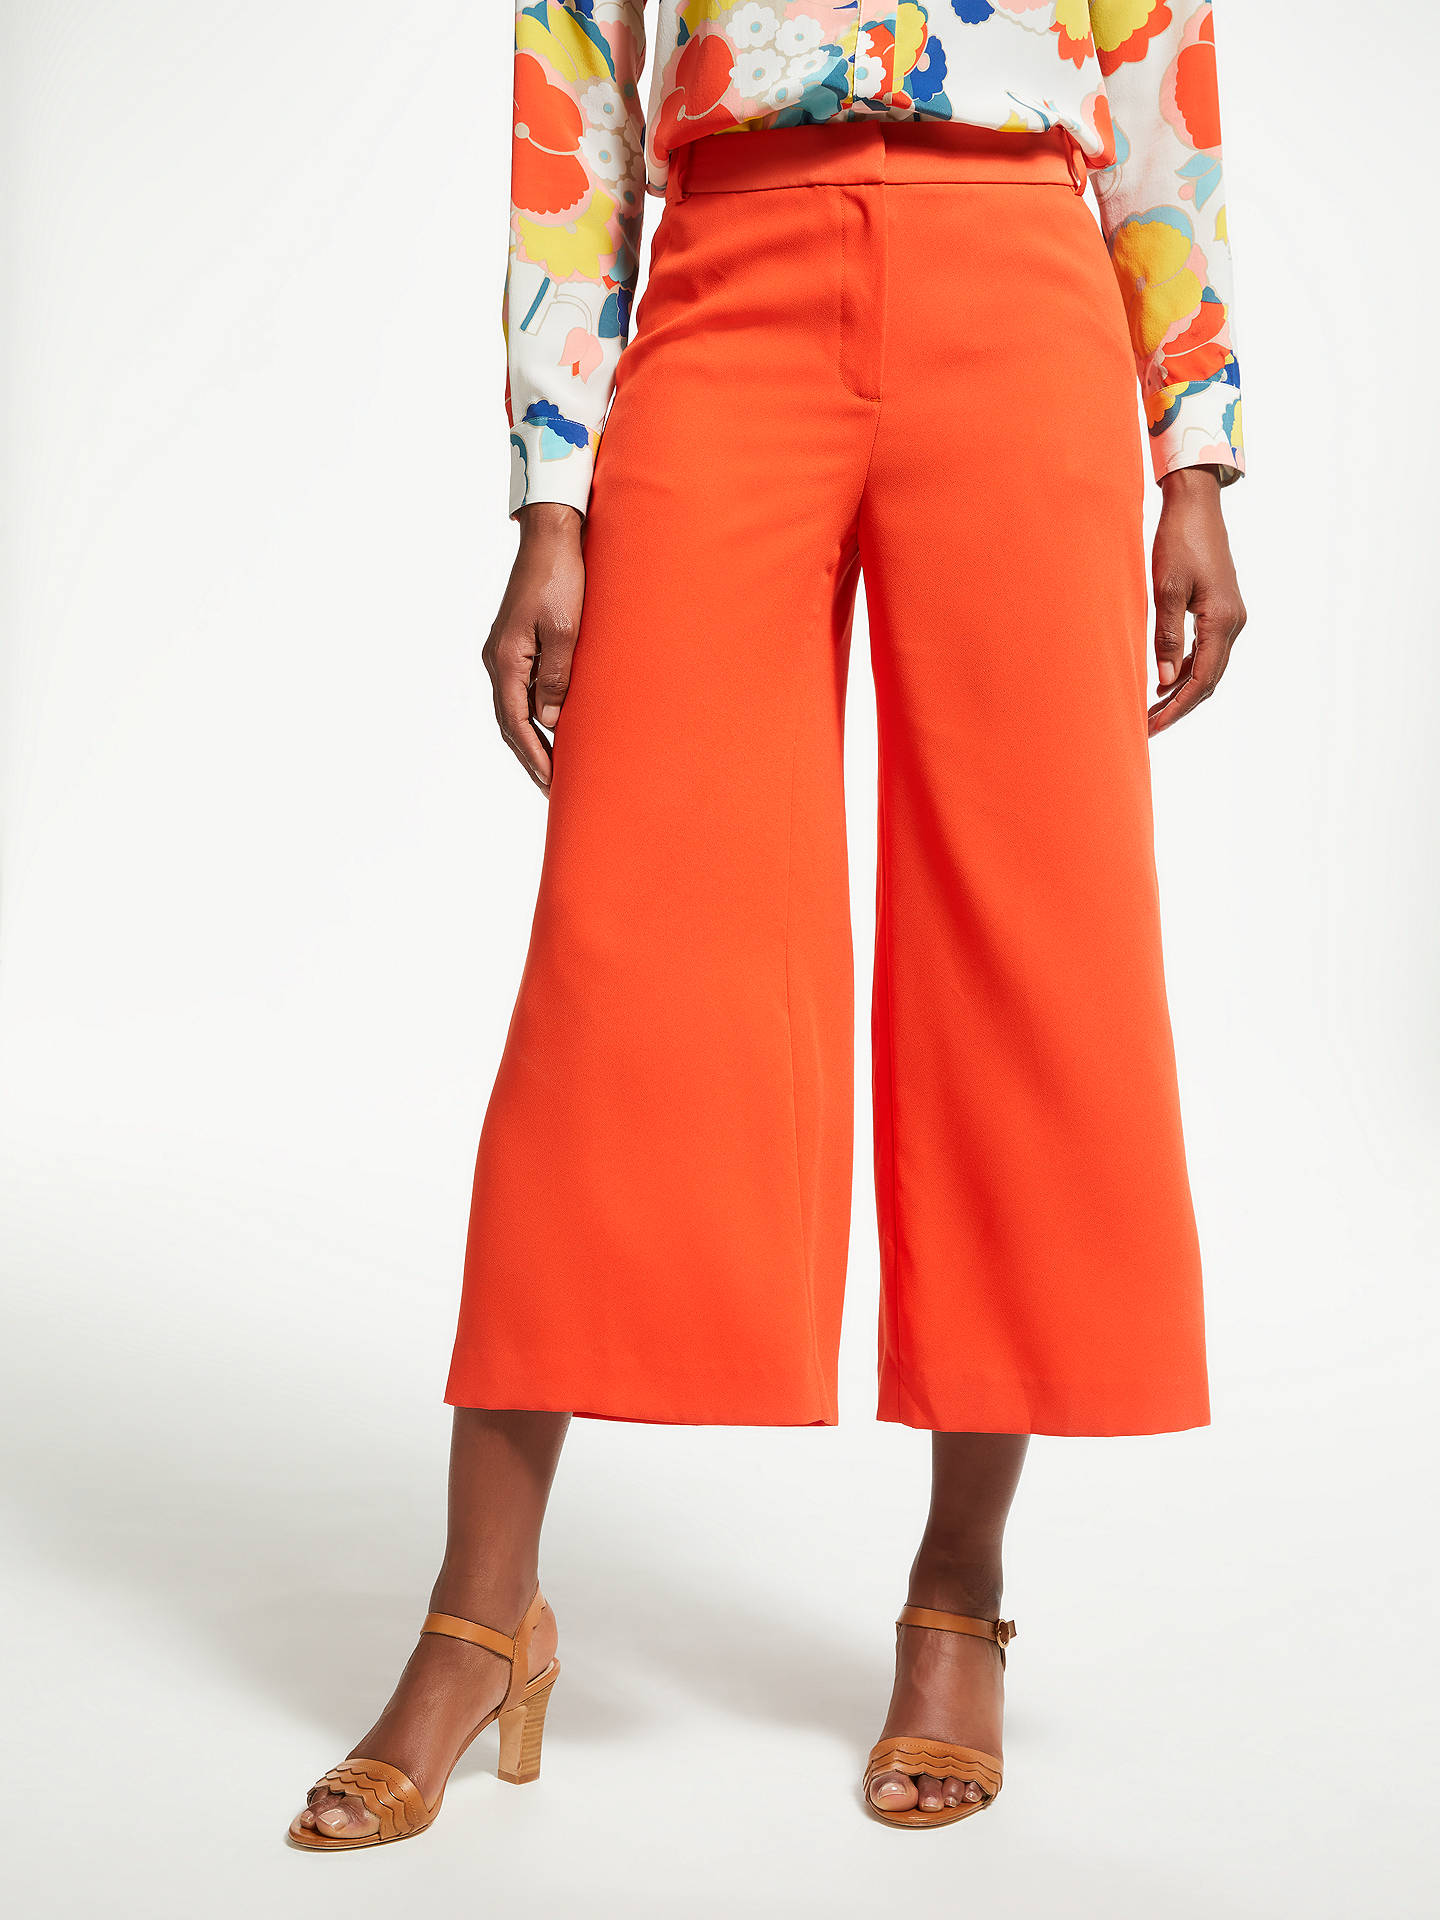 BuyBoden Aurelie Culottes, Blood Orange, 8 Online at johnlewis.com